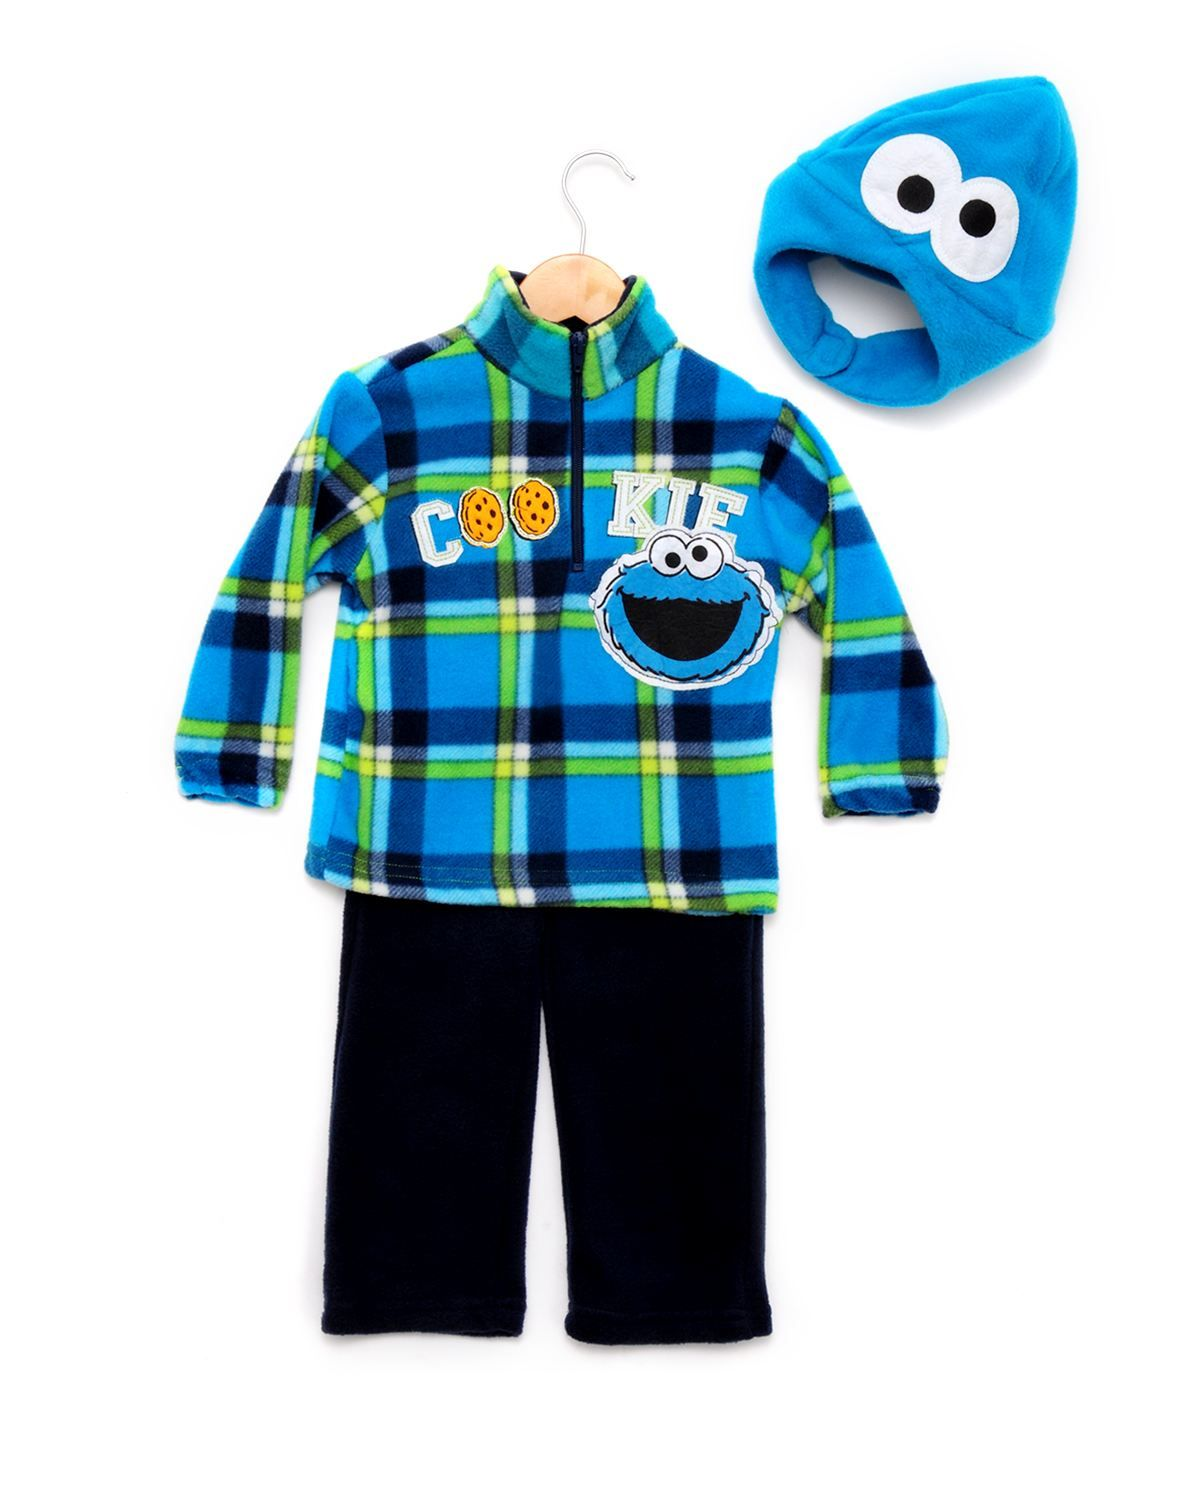 Pin by Alexander P on Kid's clothing, shoes and accesories ...